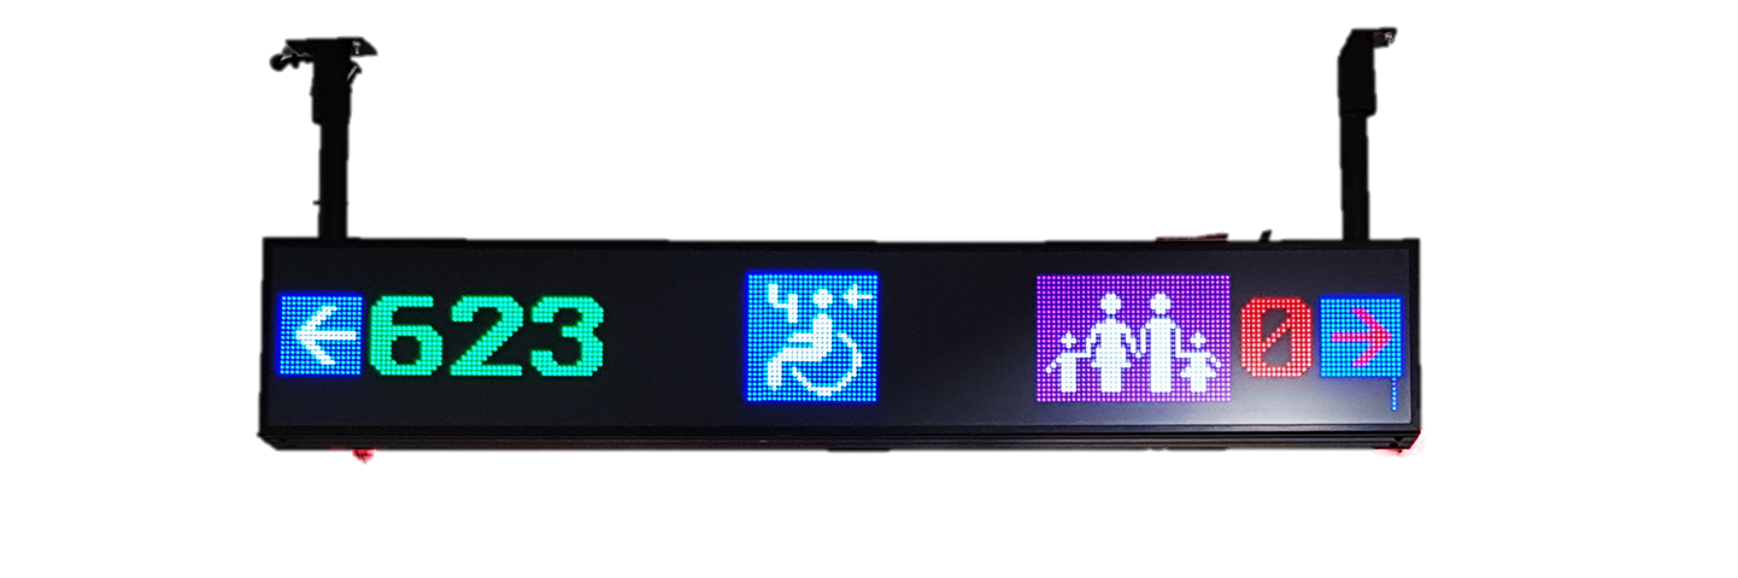 RGB Display